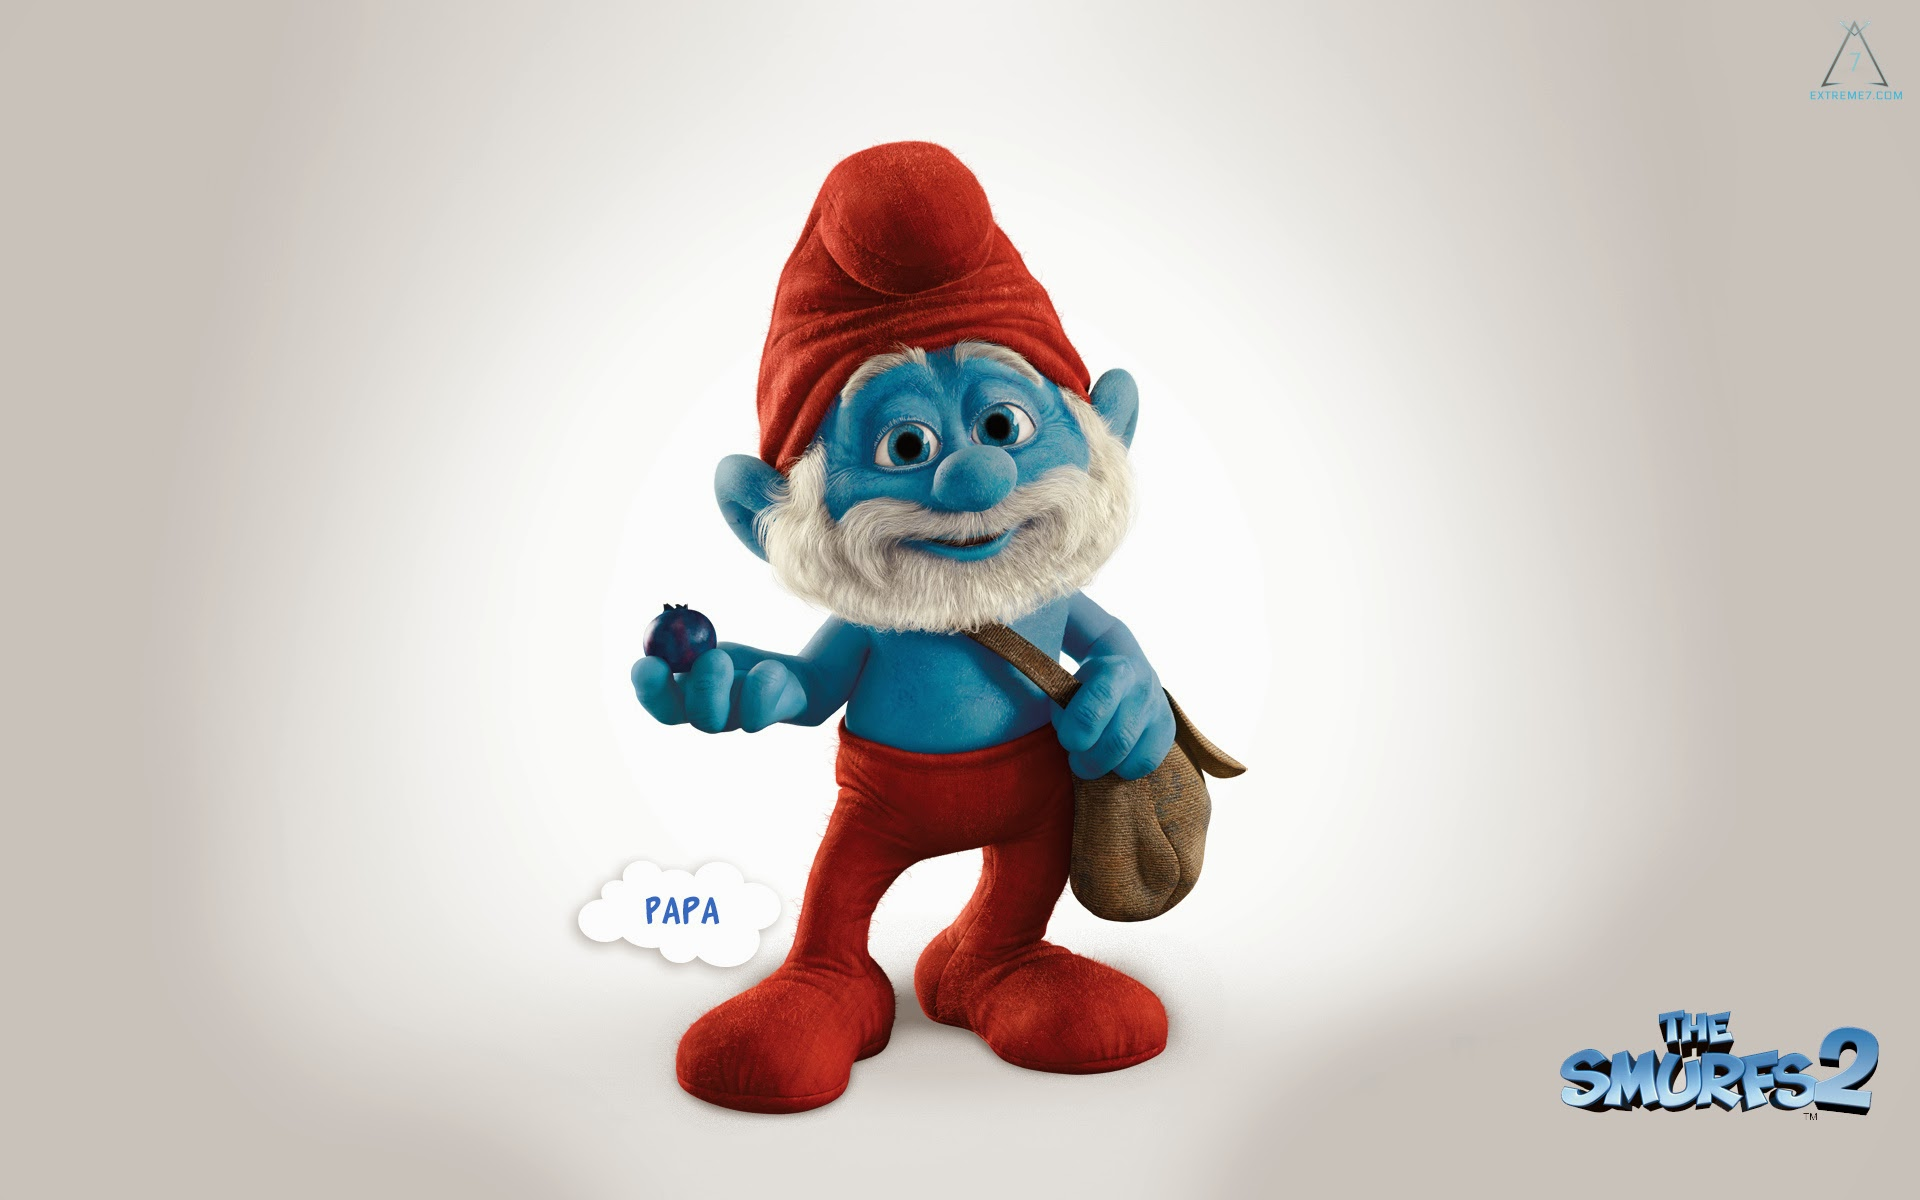 The Smurfs 2 Character Wallpapers | WallpaperDeck